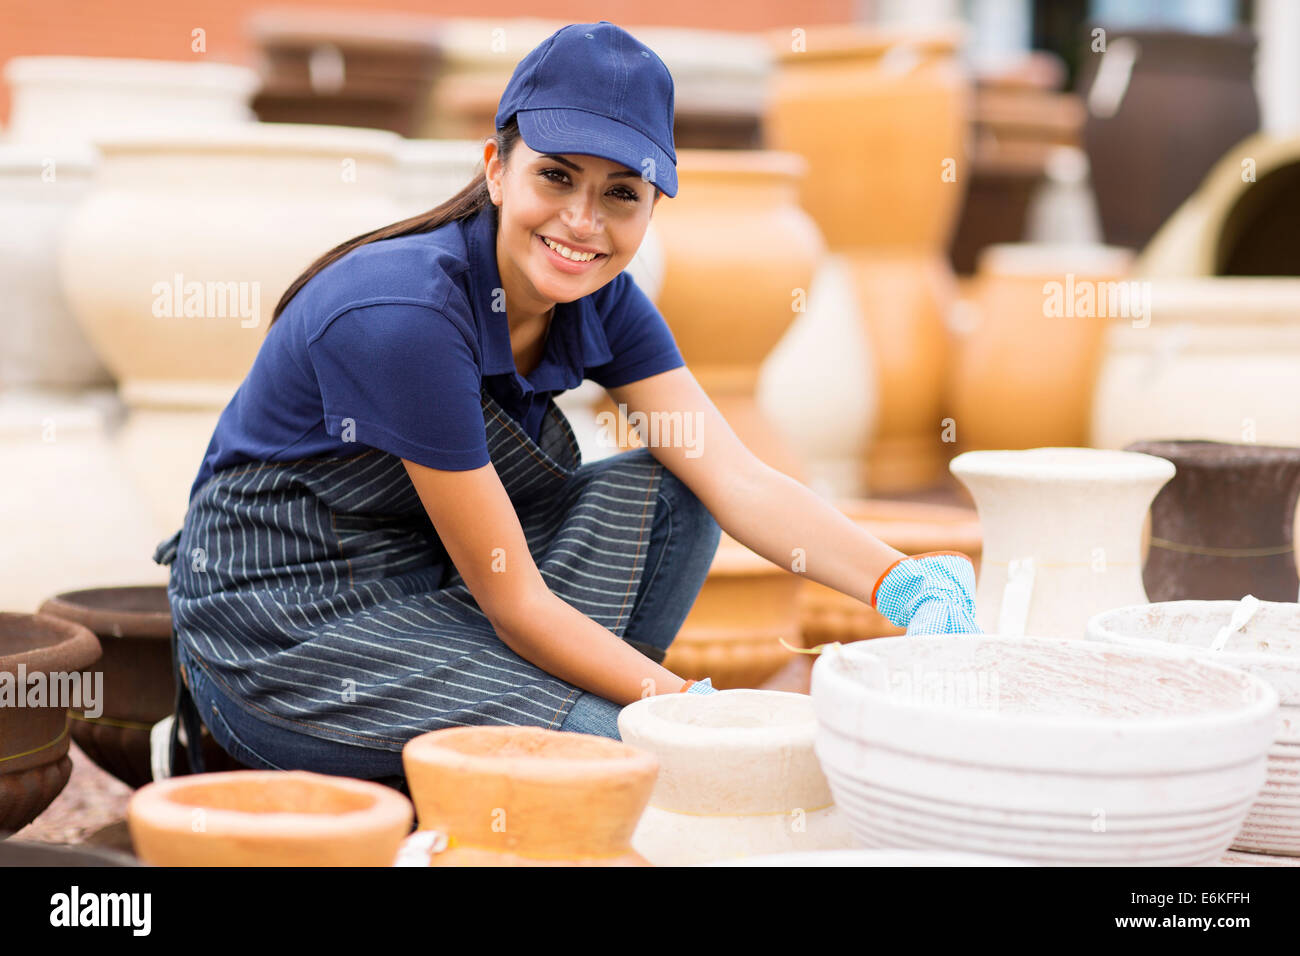 beautiful young hardware store worker stock taking stock photo pretty young hardware store worker working in home and garden center stock photo